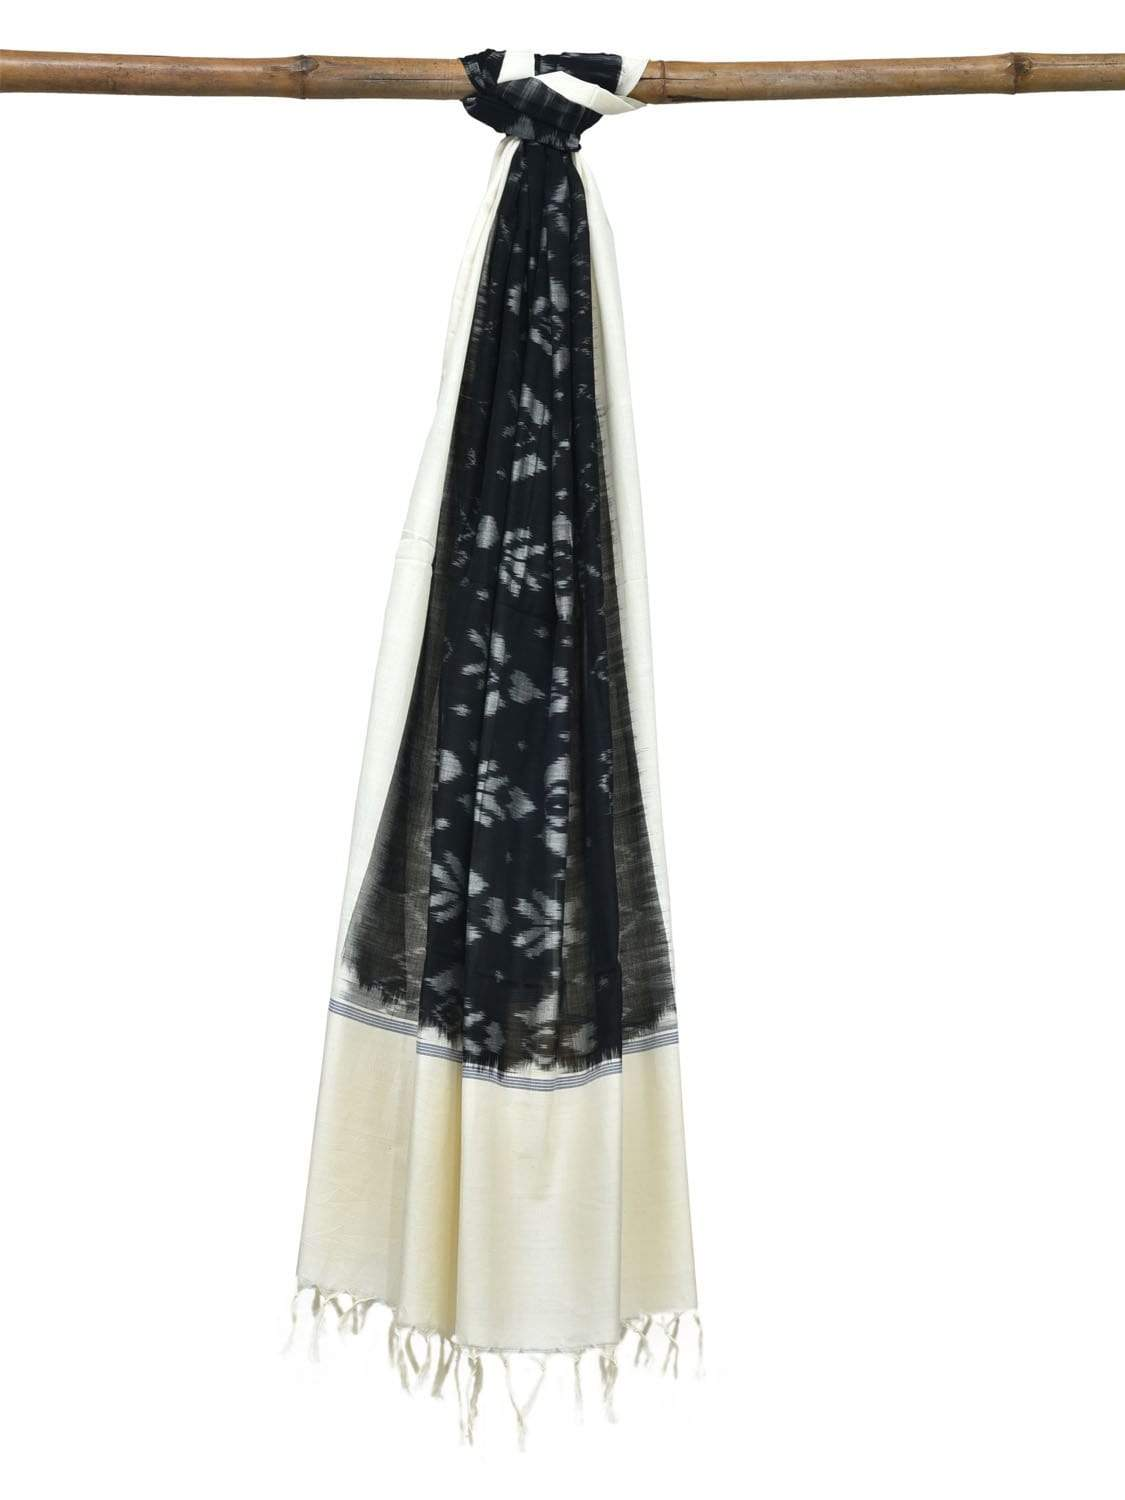 Black and White Pochampally Ikat Cotton Handloom Dupatta with Body Design ds1845